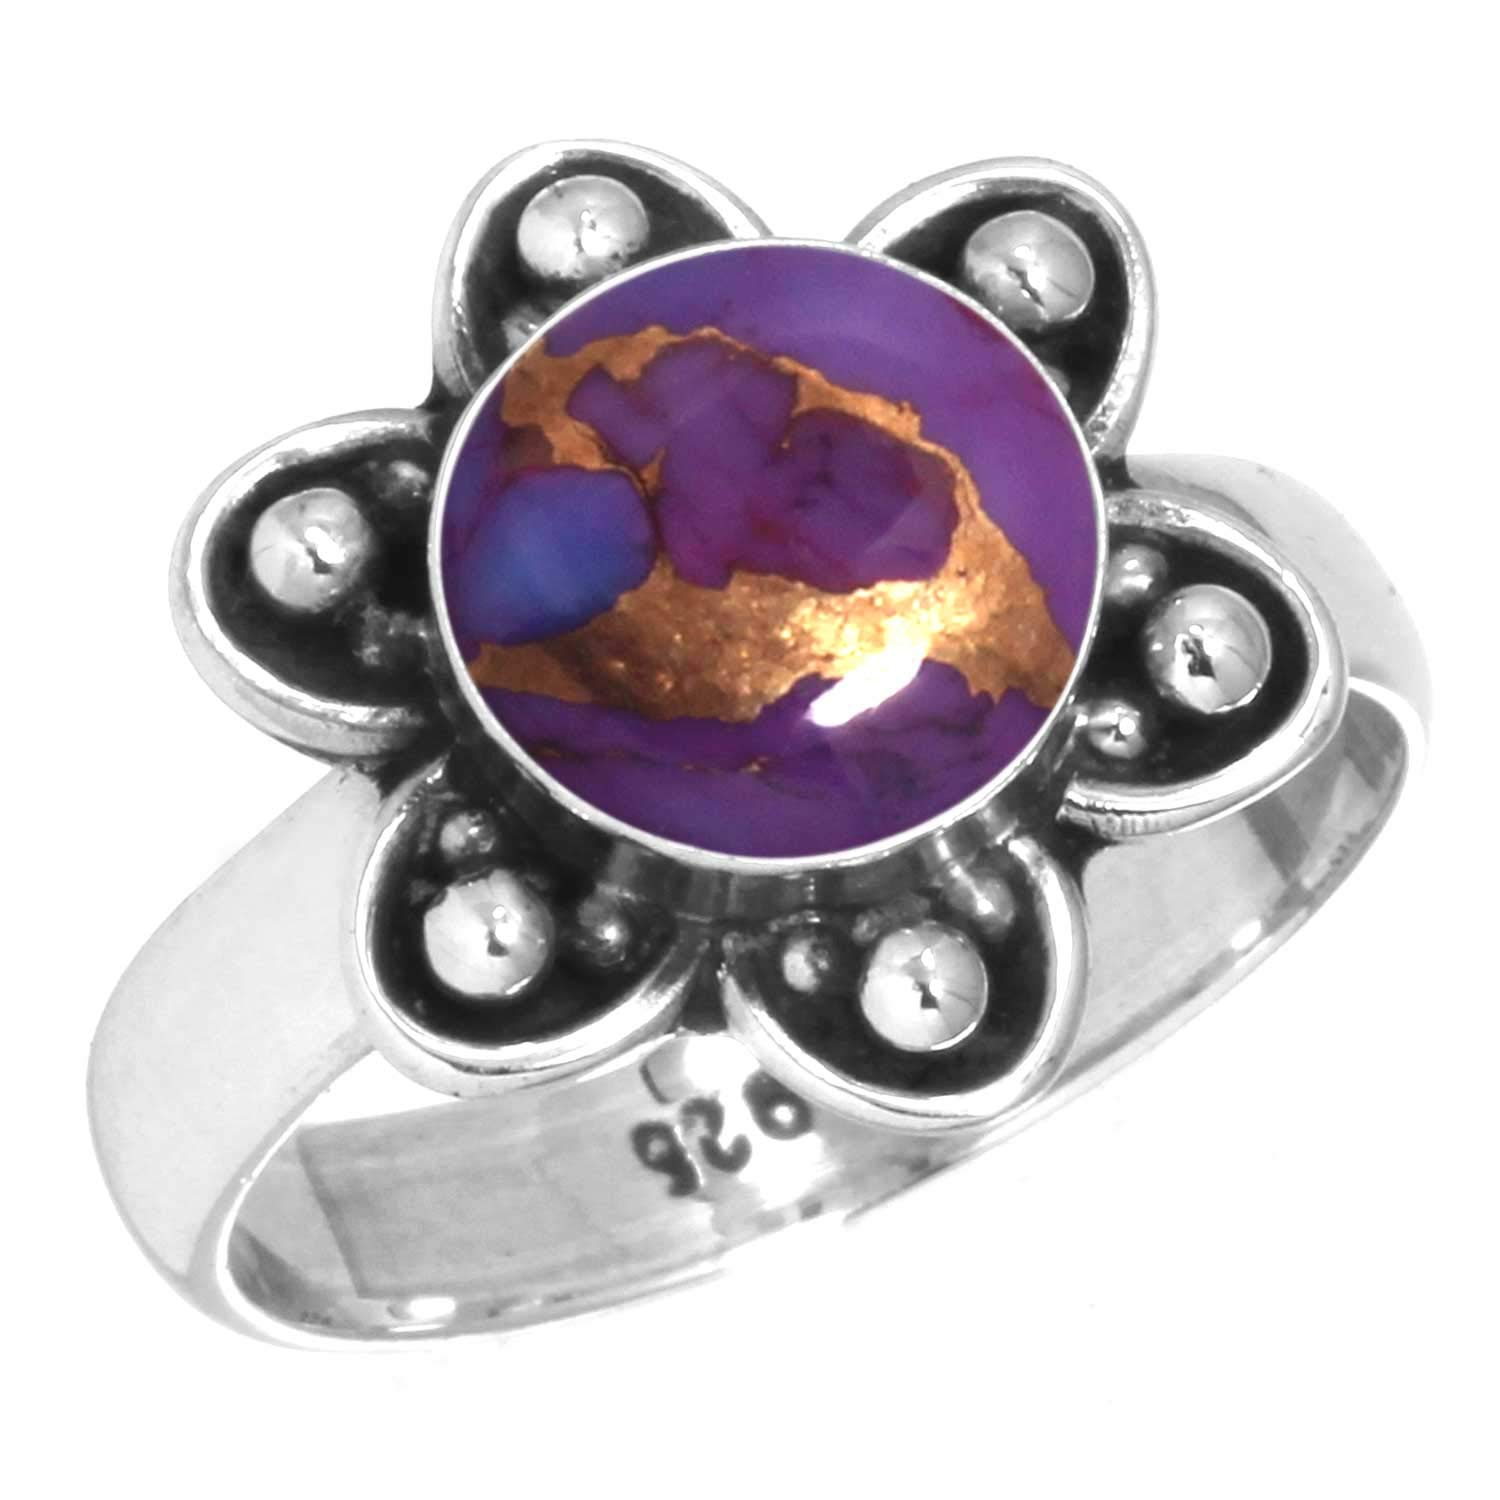 Jeweloporium Solid 925 Sterling Silver Gemstone Handmade Ring for Women